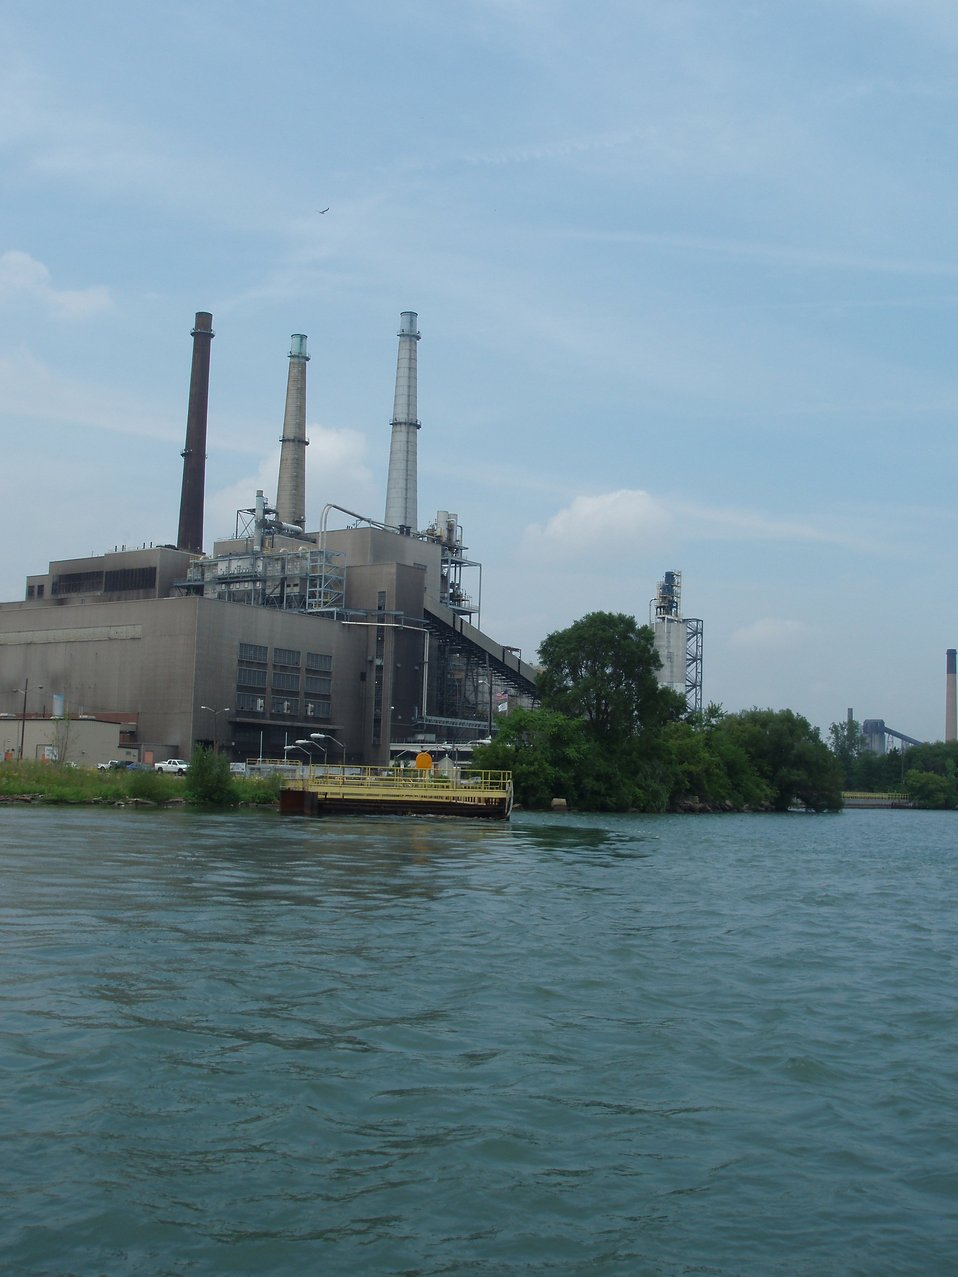 Industry along the Detroit River